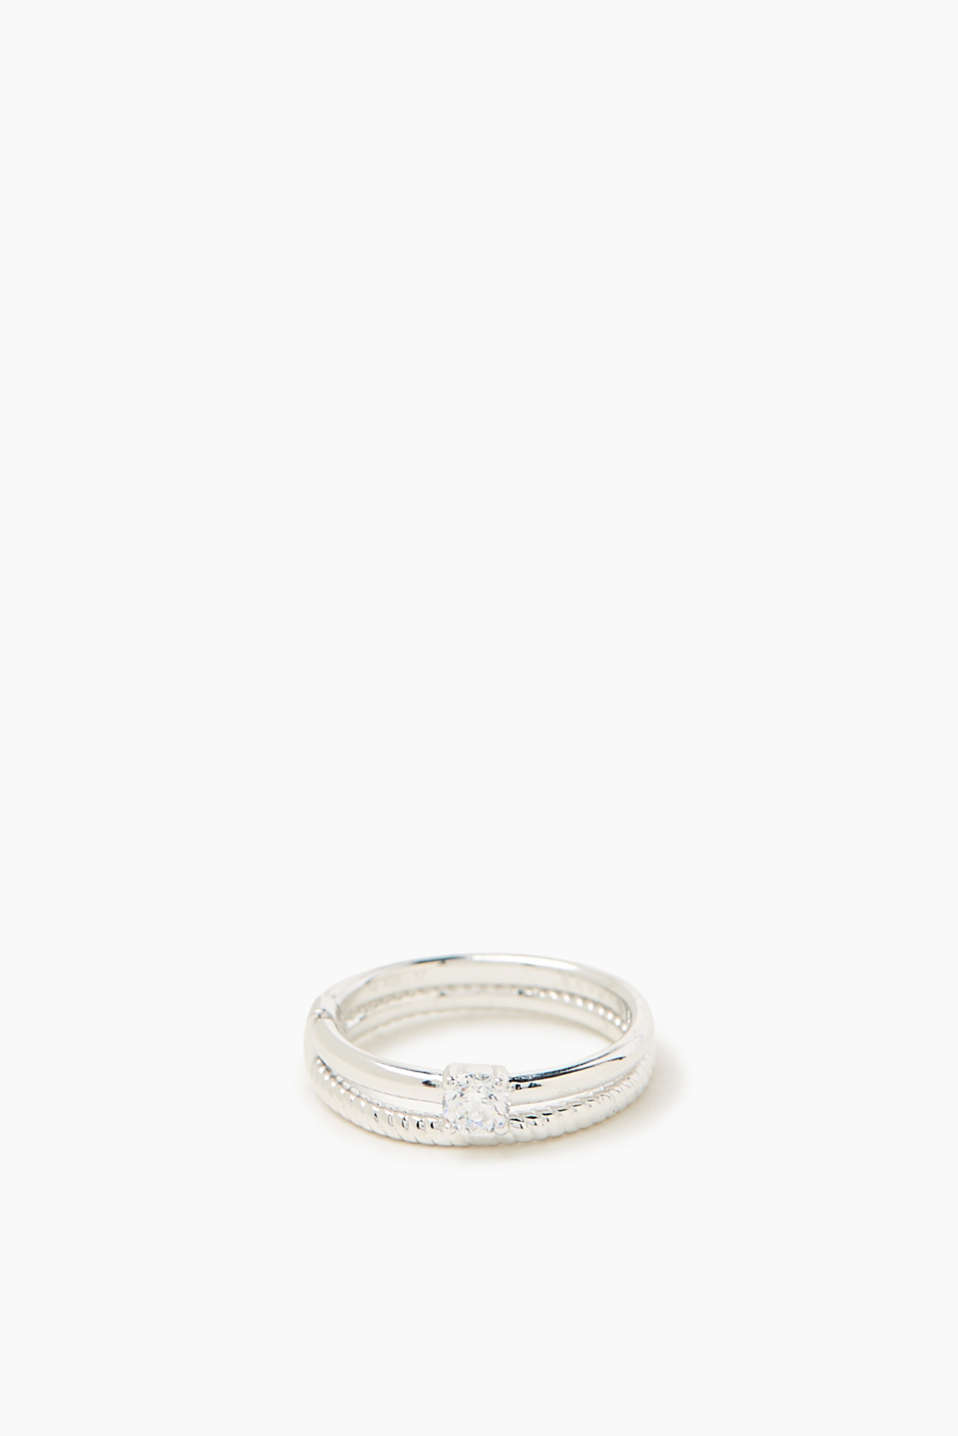 Esprit - Twin ring with zirconia stone, sterling silver